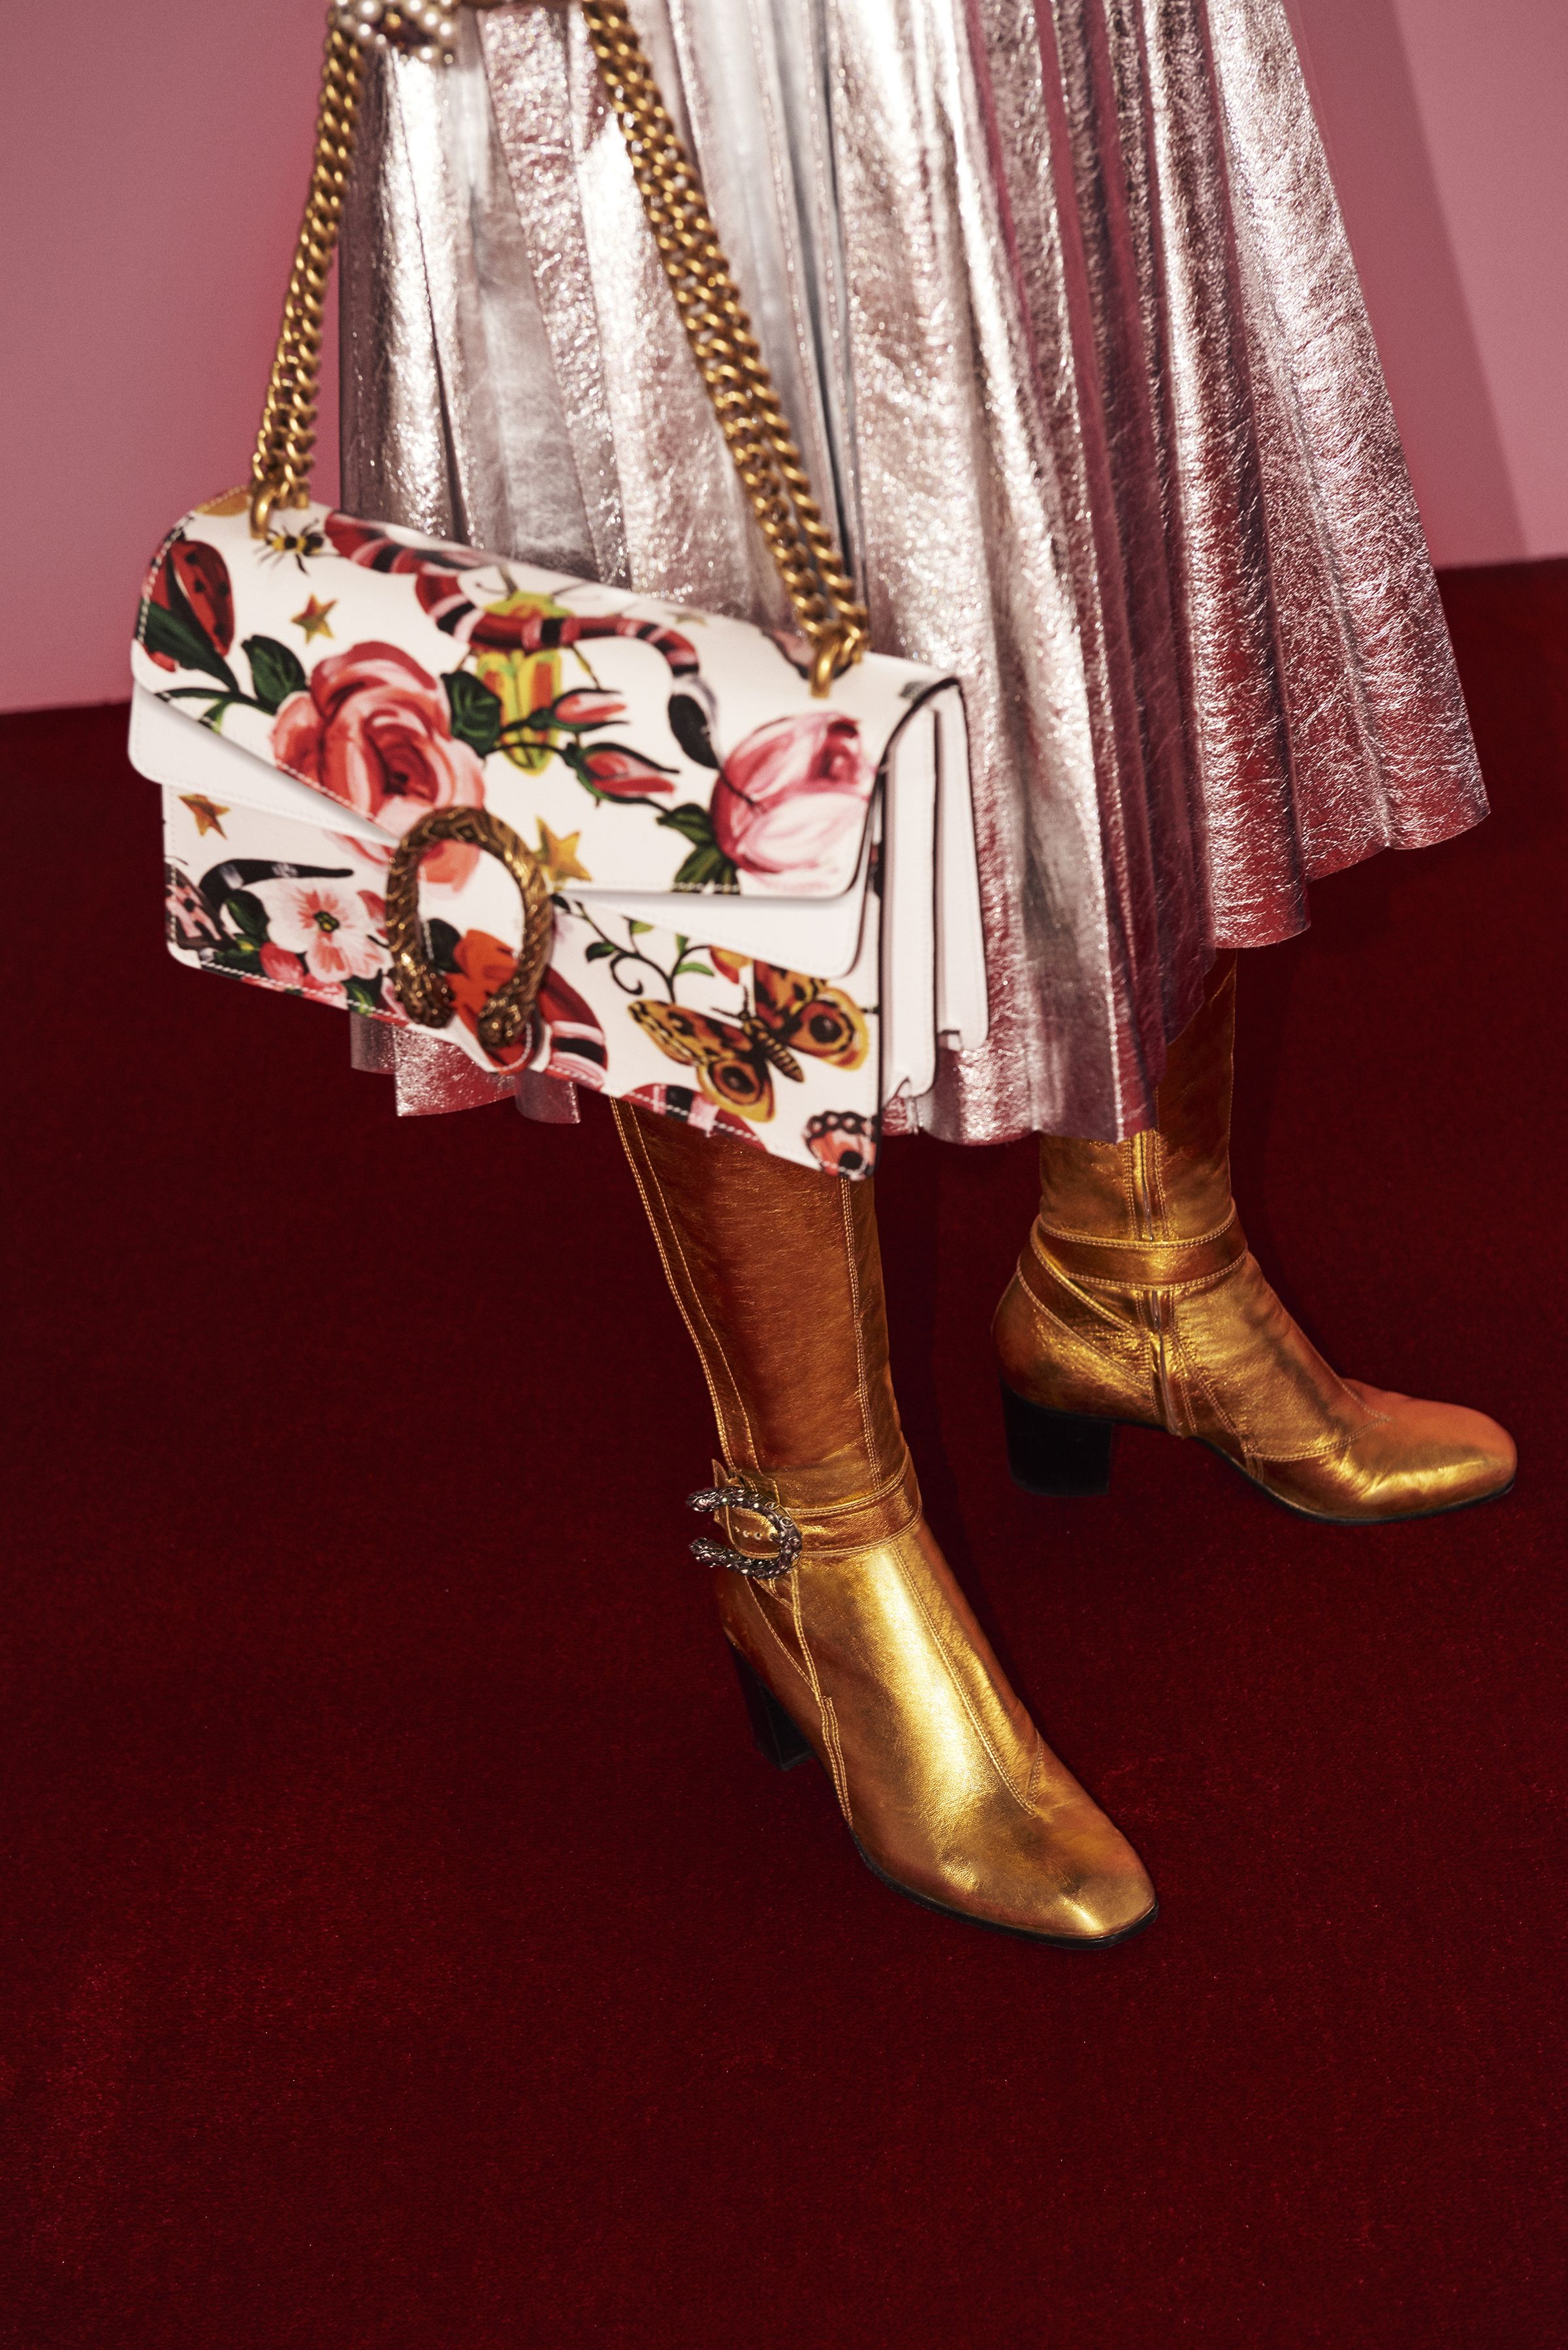 791957e3200 The Gucci Garden Dionysus bag and pleated metallic silver leather skirt.  Mid-heel knee boots in metallic gold leather and textured tiger head  closure ...